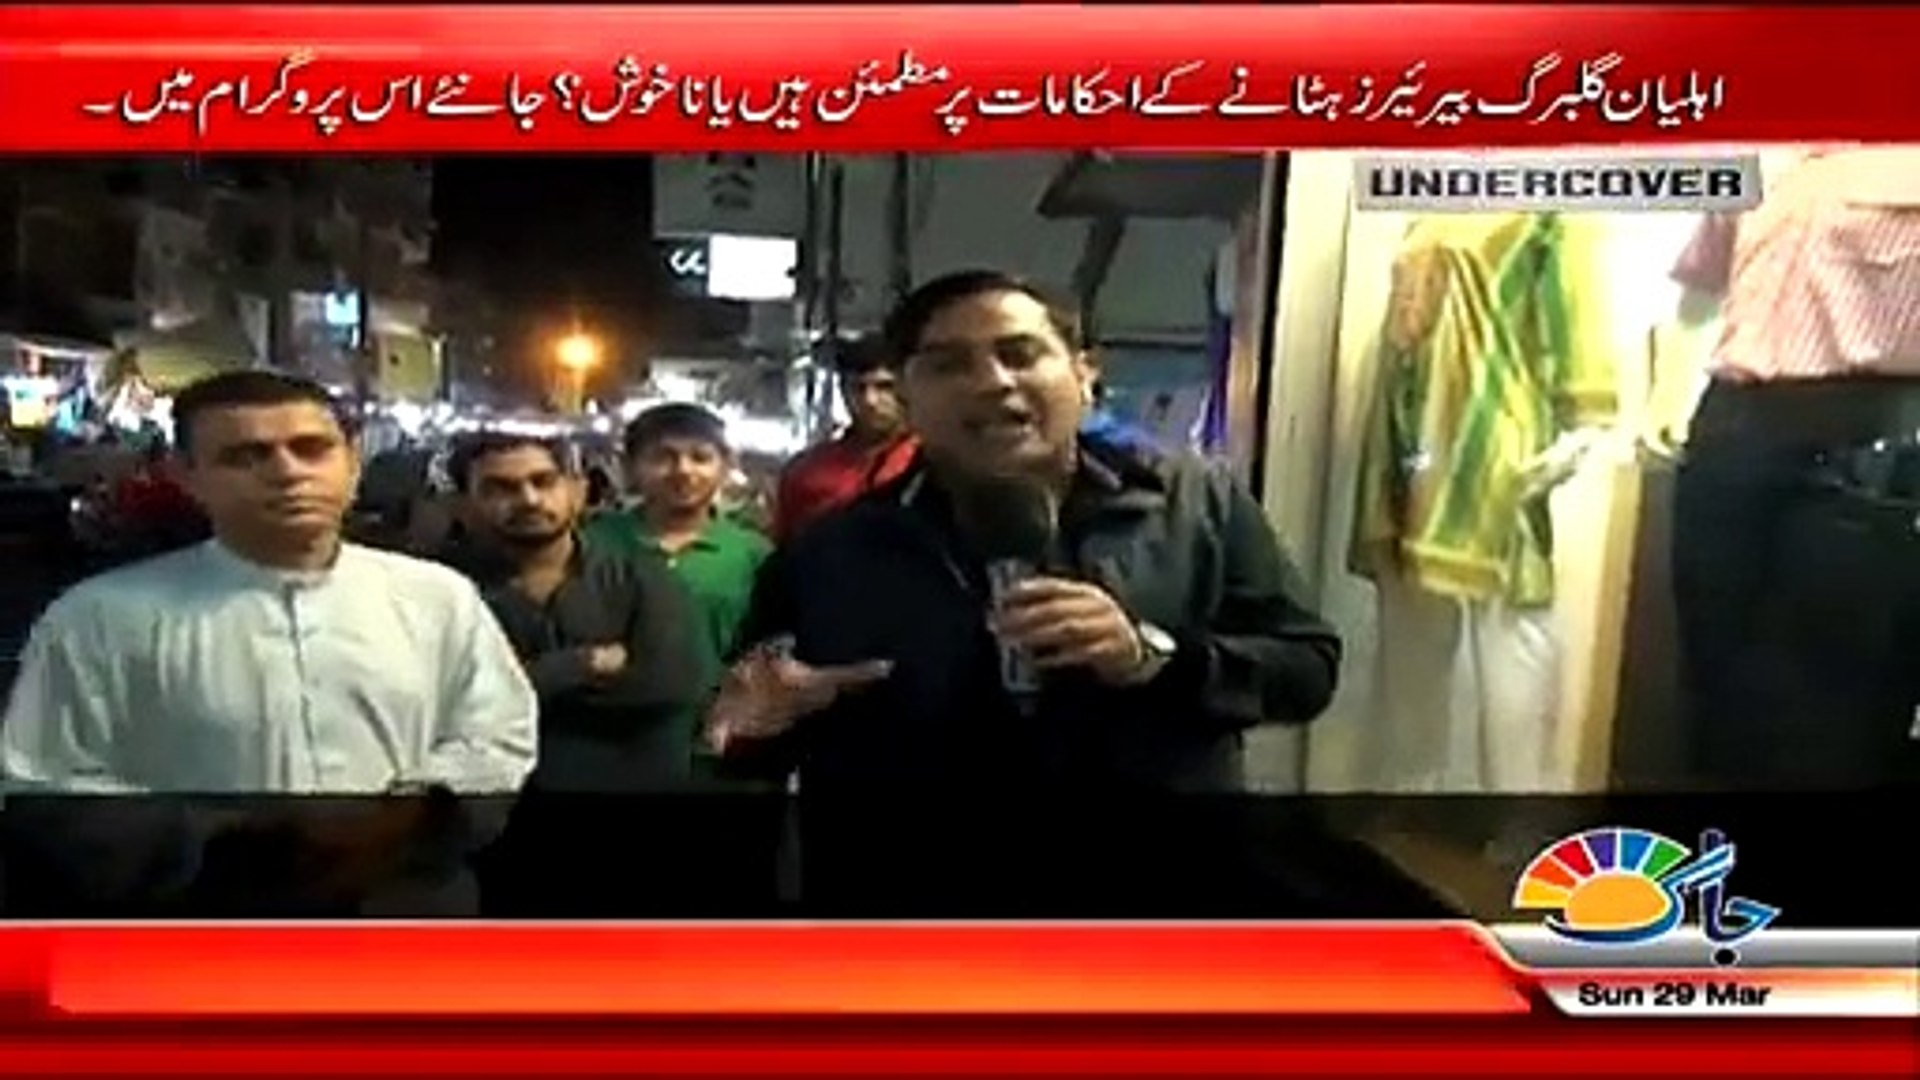 Undercover (Karachi- Operation Continues But Barriers Are Still There) – 29th March 2015